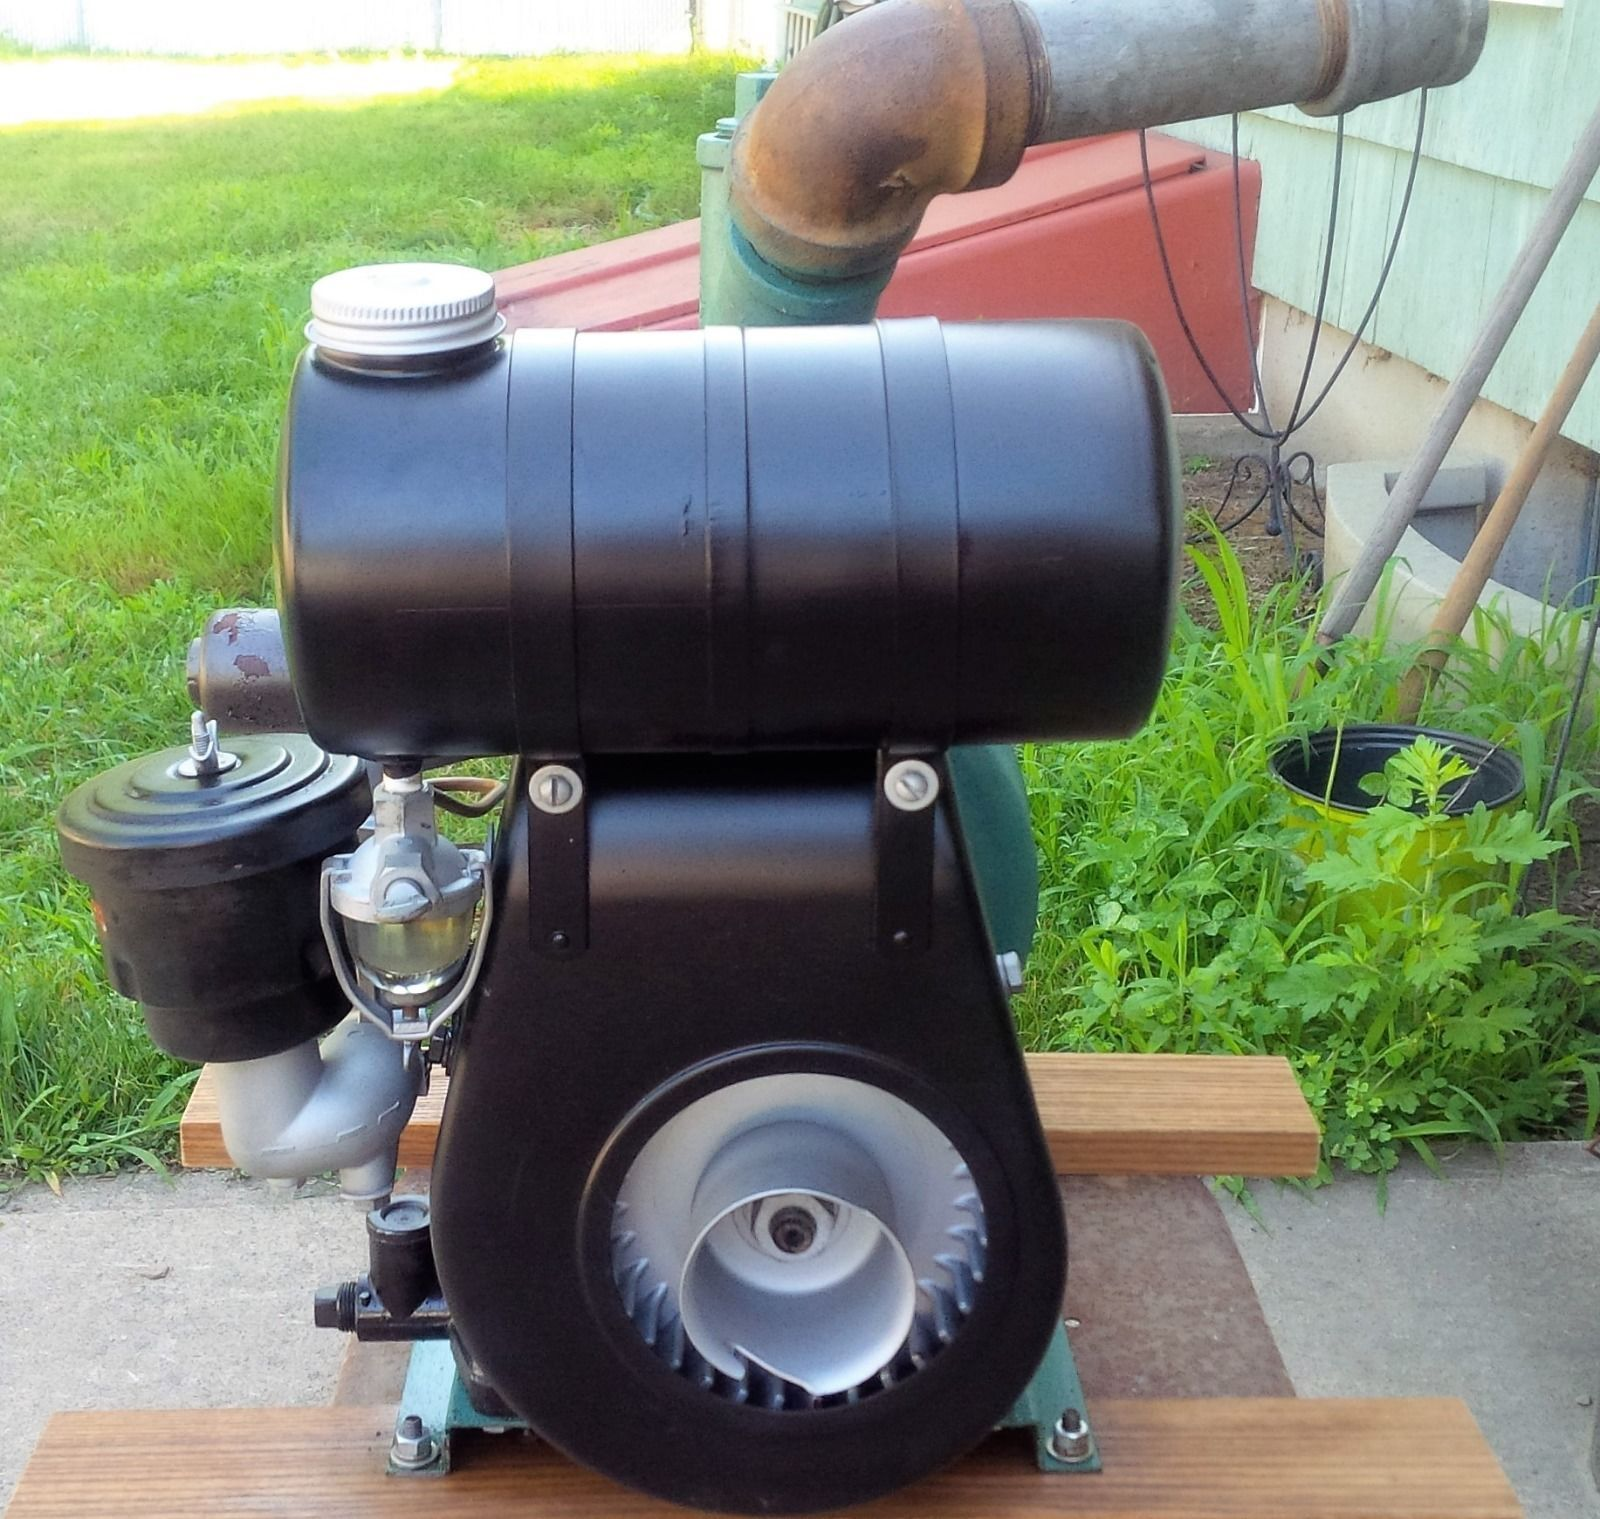 Briggs And Stratton Lawn Mower Engine Diagram Antique Vintage Model Np Fairbanks Morse Pump Ebay